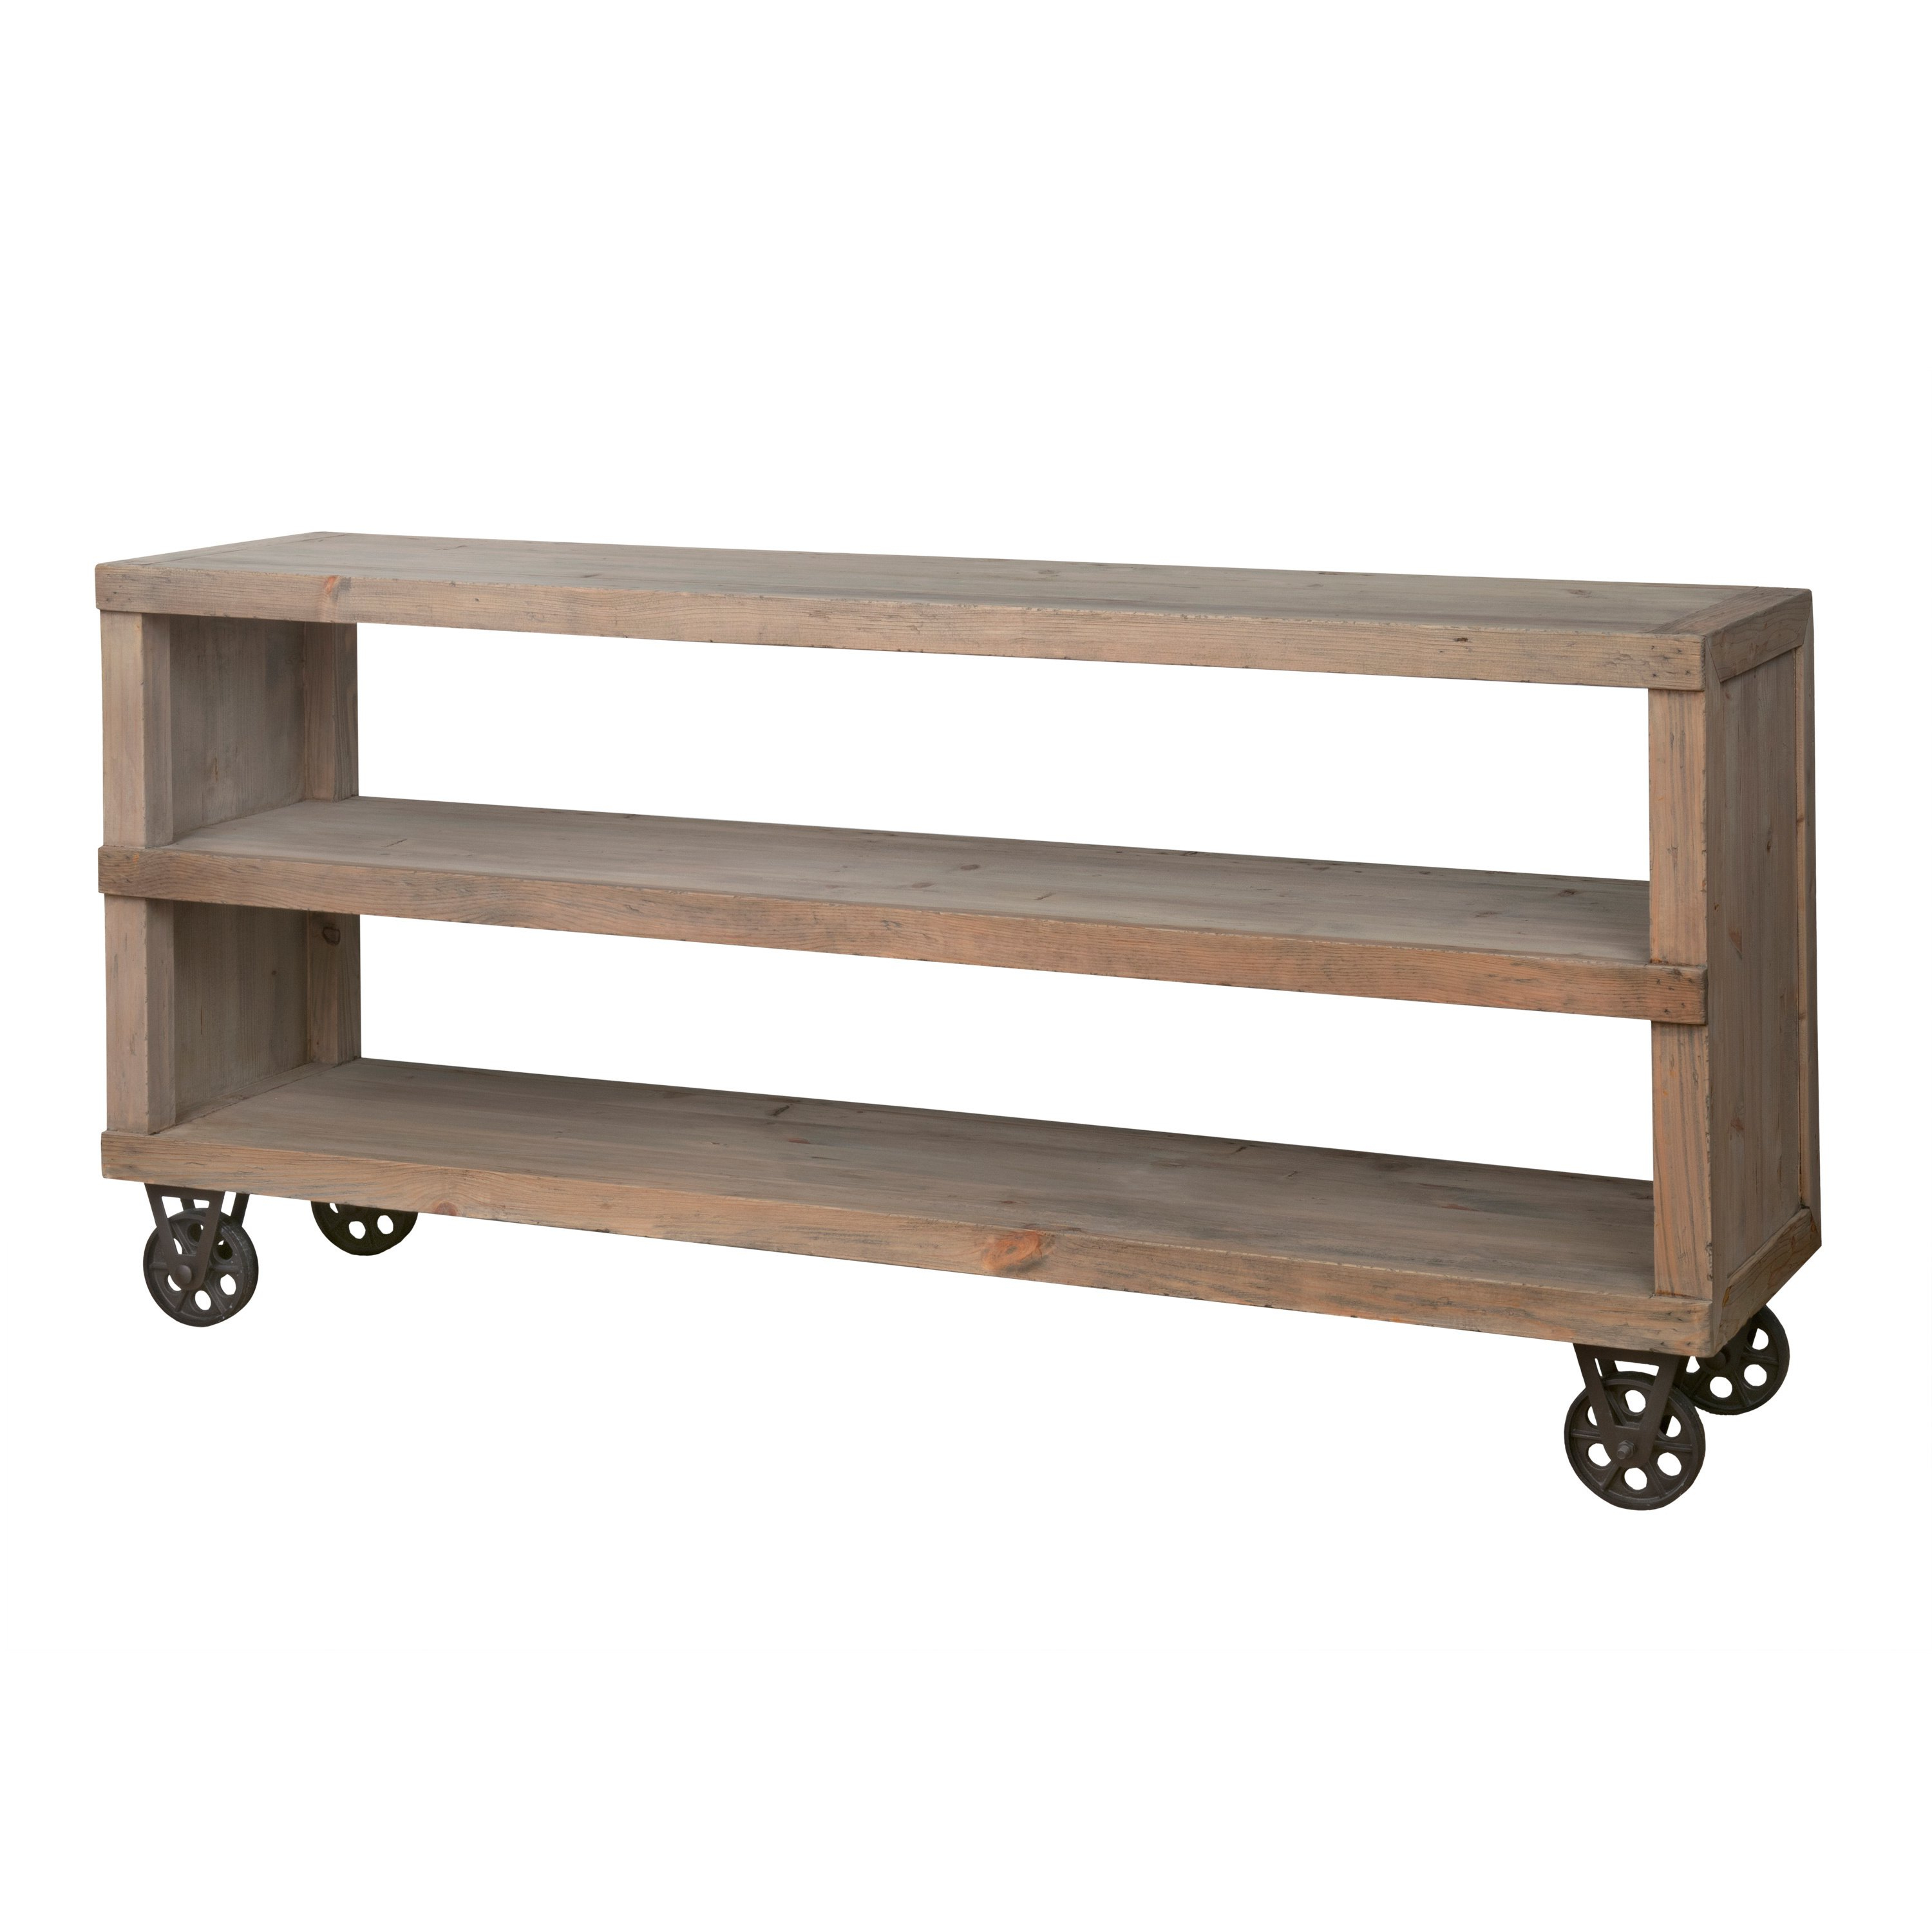 Caden 63 Inch Tv Stands Inside Well Known East At Main's Caden Console Table – Free Shipping Today – Overstock (View 2 of 20)